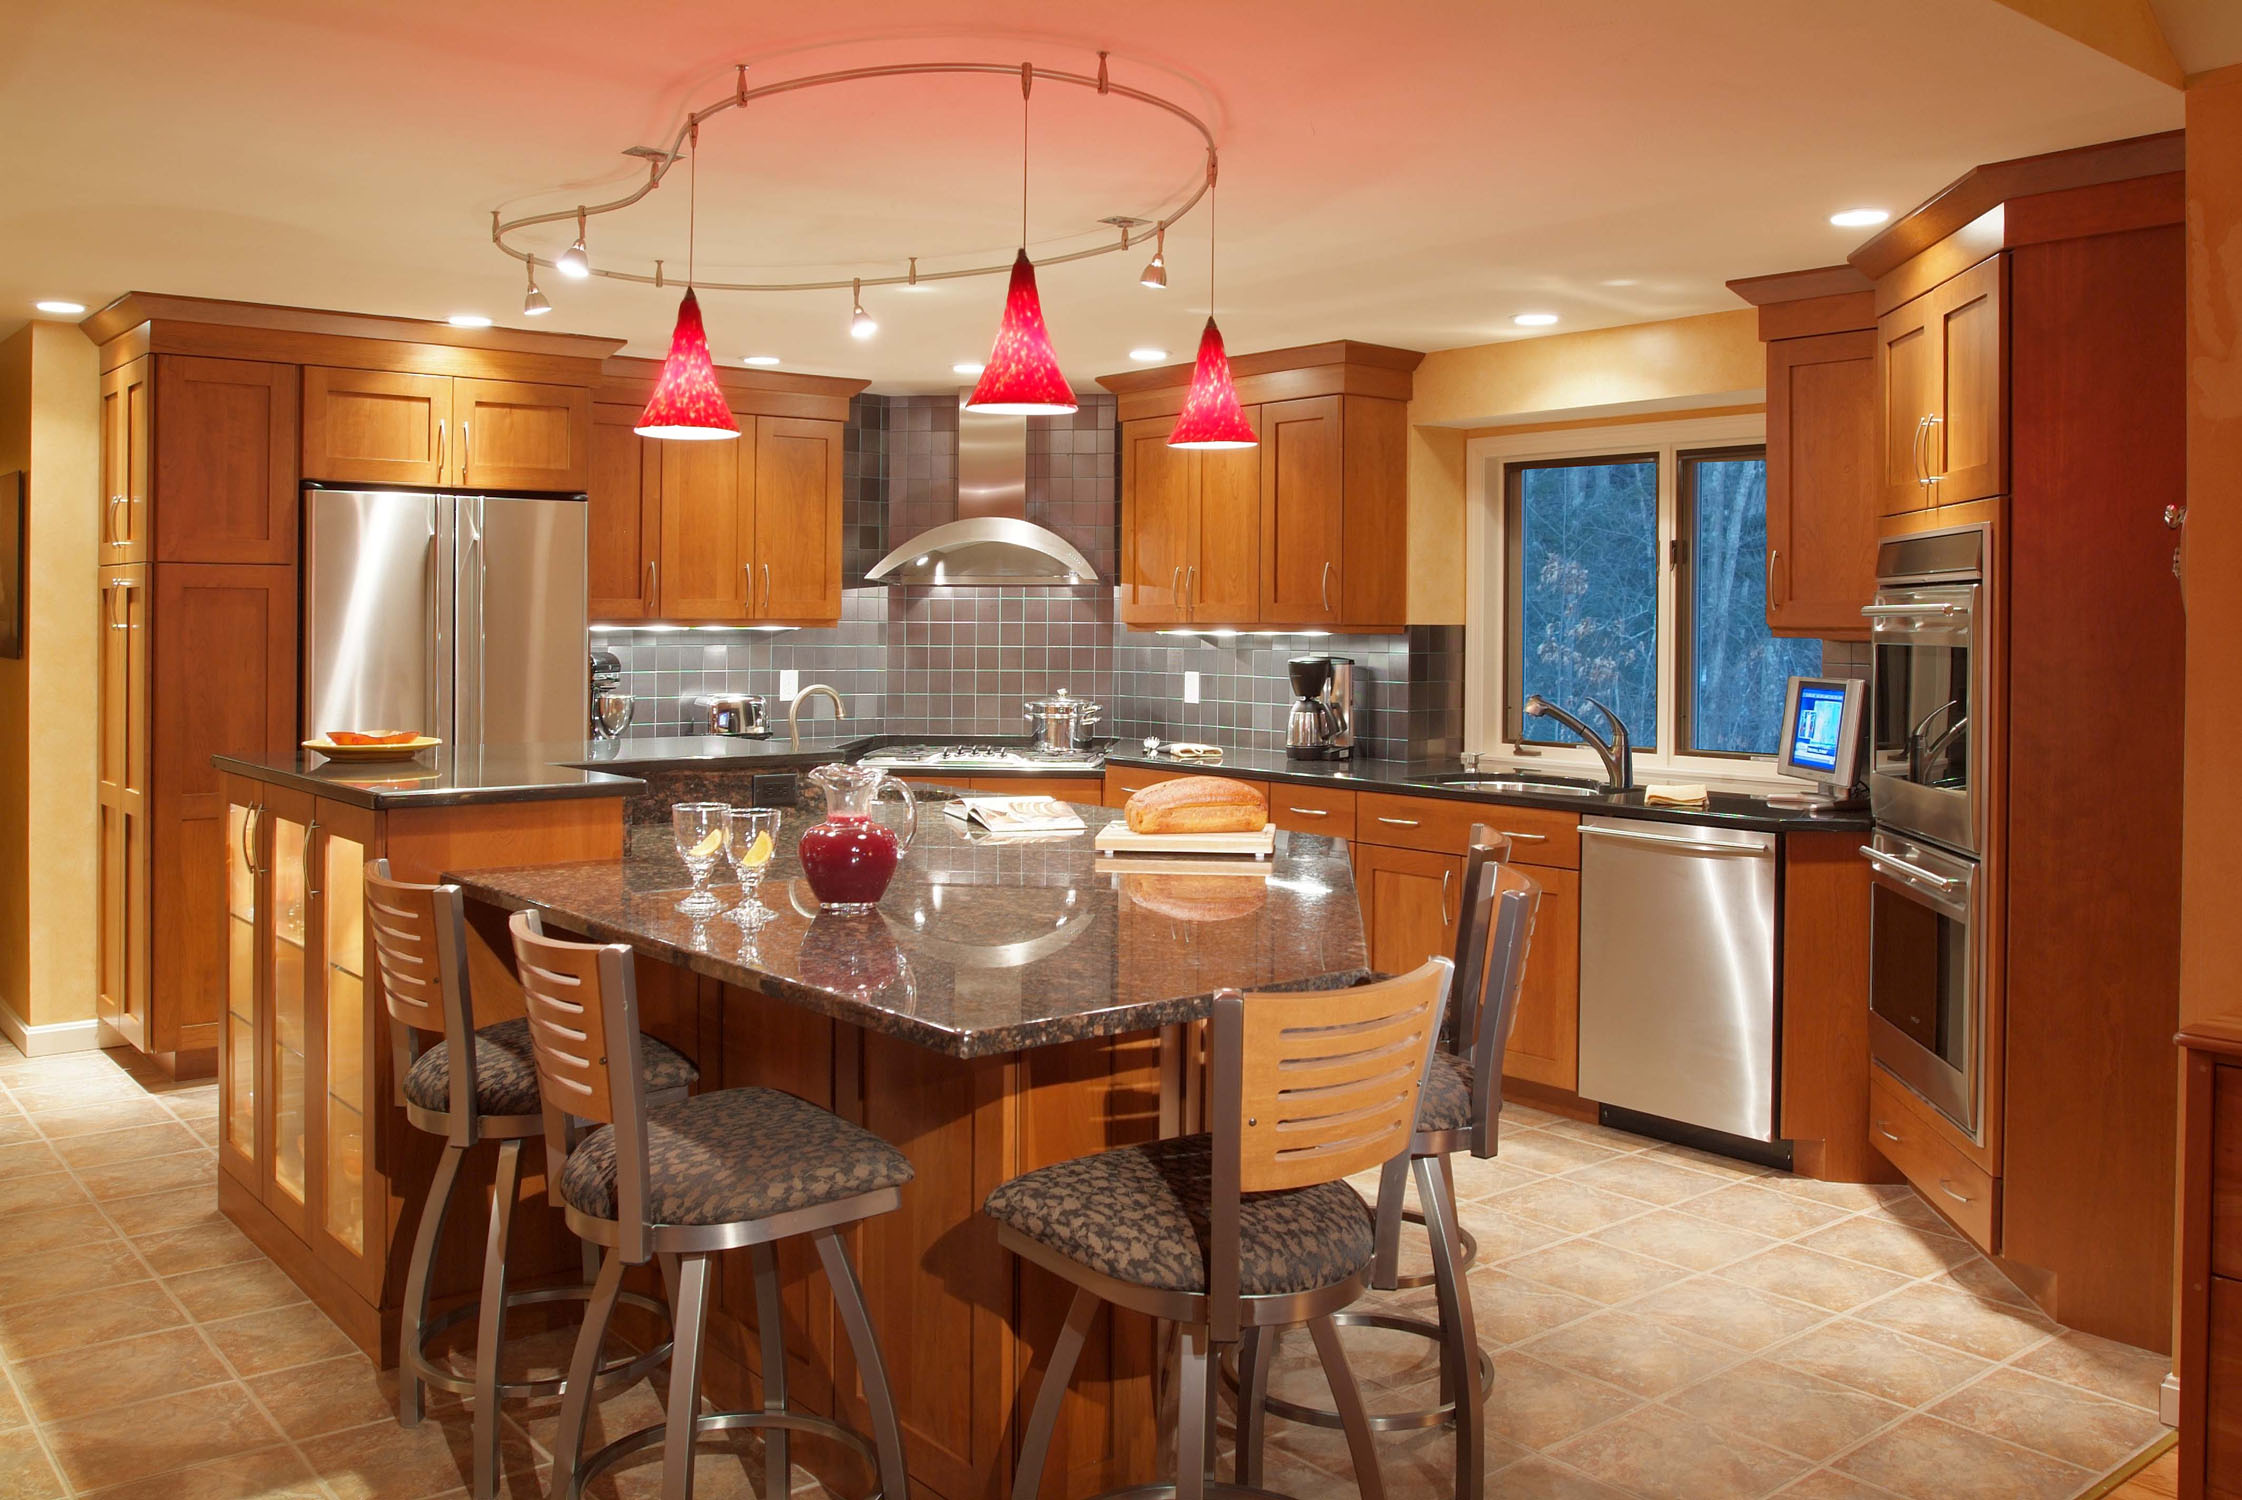 Ideas For Bathroom Remodels Pittsburgh Kitchens | Nelson Kitchen & Bath - Mars, Pa